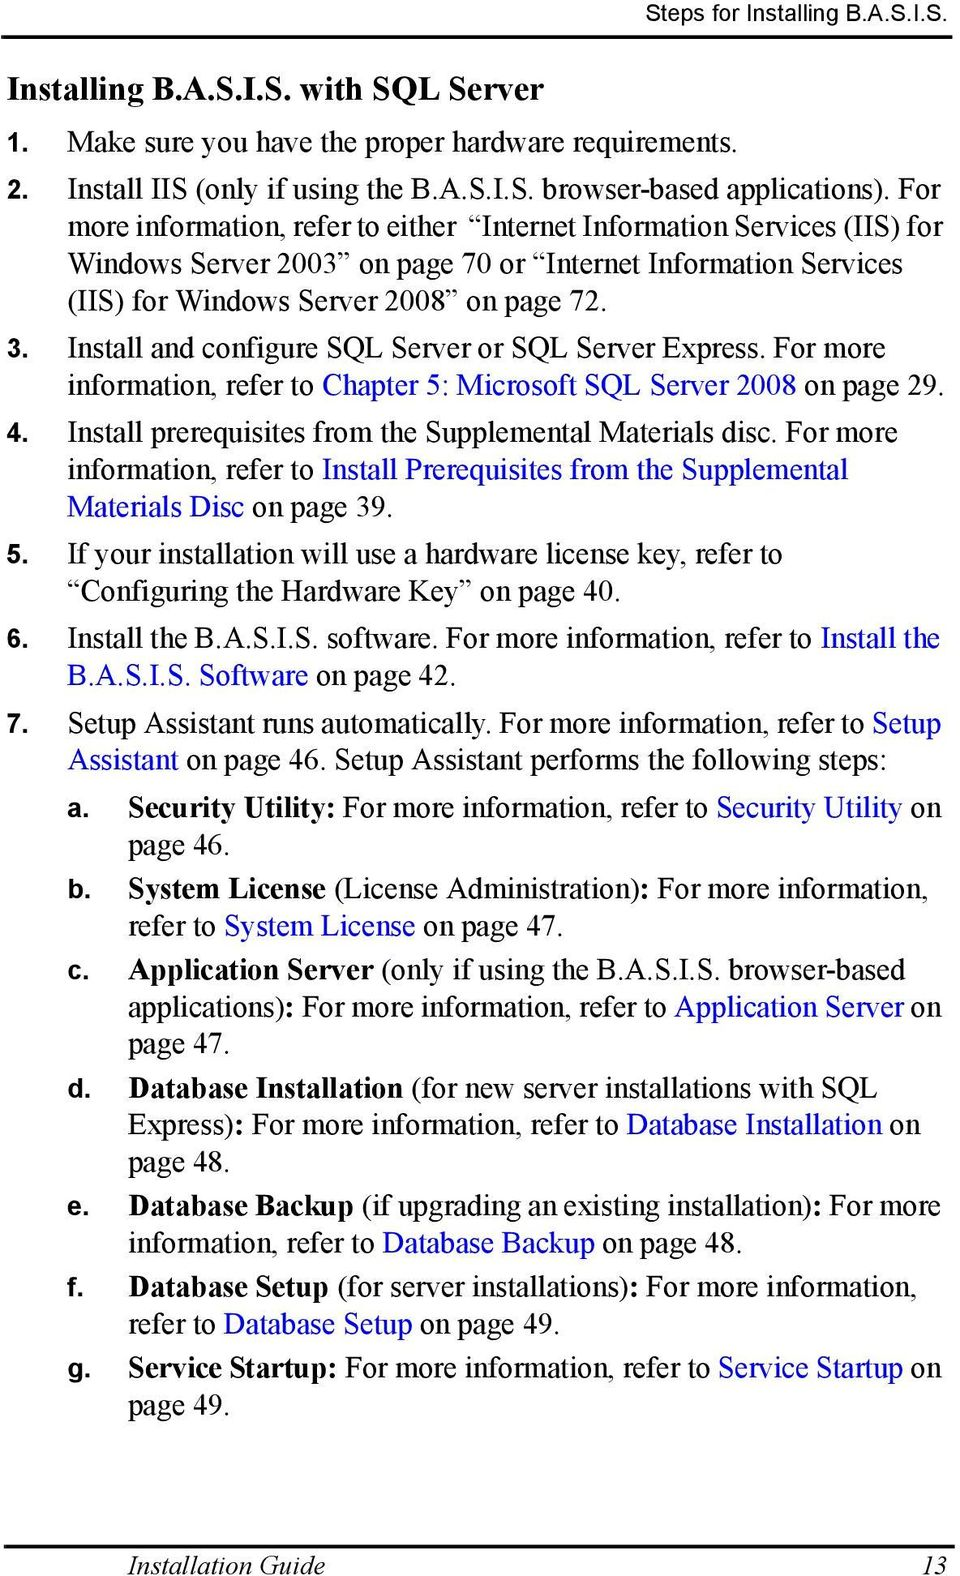 Install and configure SQL Server or SQL Server Express. For more information, refer to Chapter 5: Microsoft SQL Server 2008 on page 29. 4. Install prerequisites from the Supplemental Materials disc.